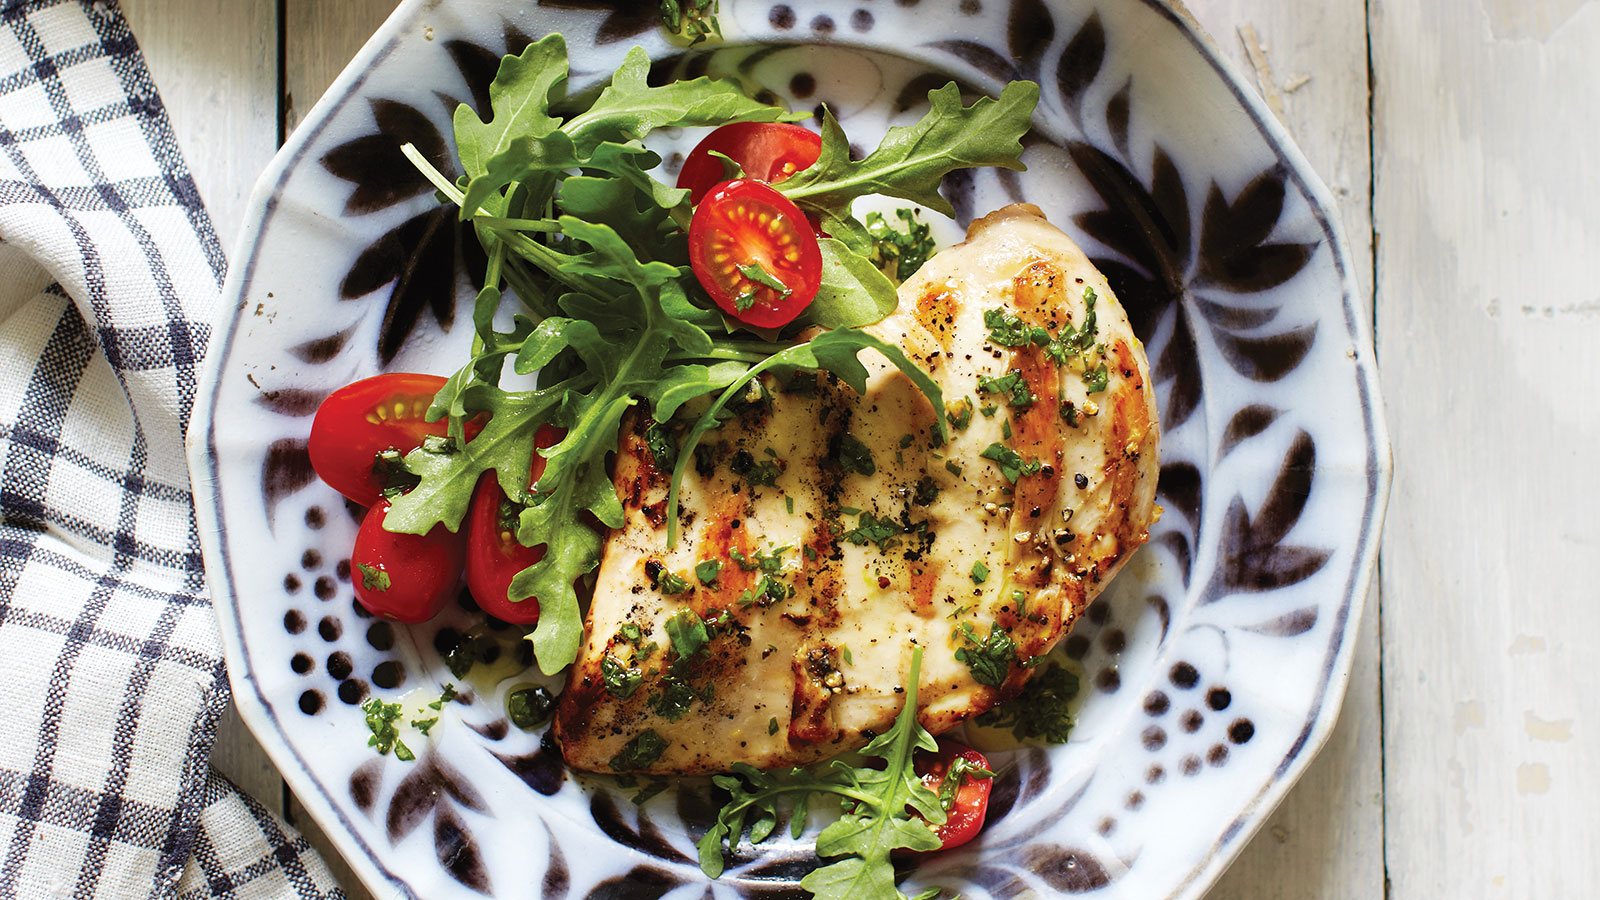 Marinated Chicken with Basil Drizzle